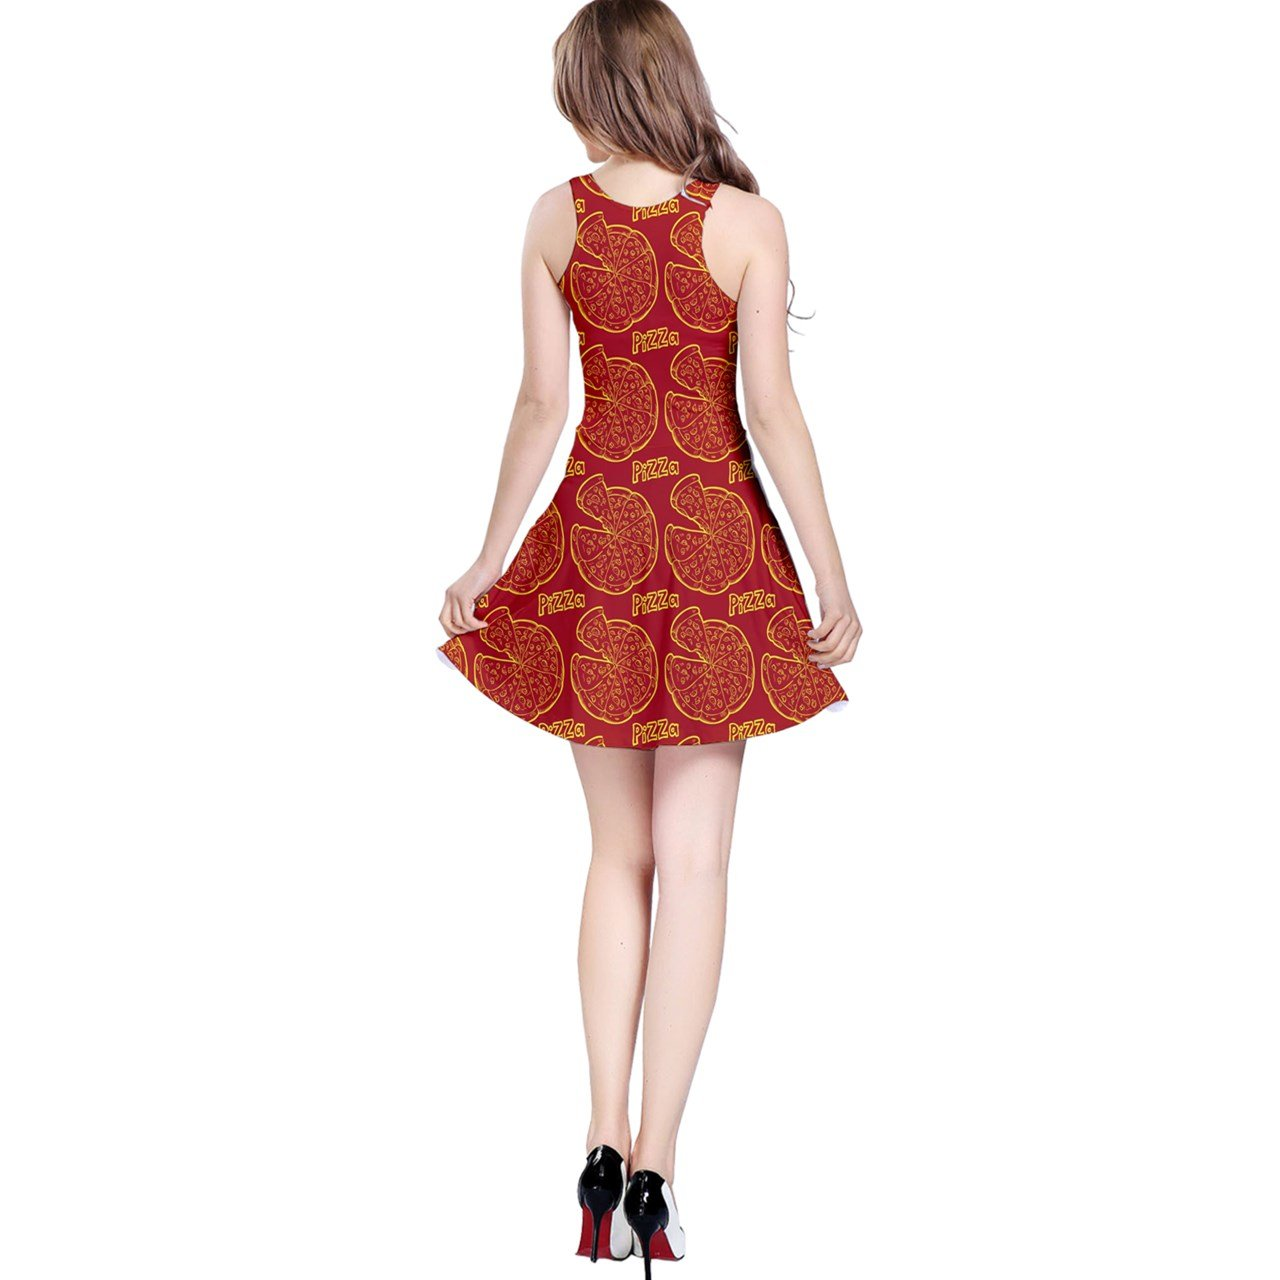 5197febd6c CowCow Womens Red Pizza Design Sleeveless Skater Dress at Amazon Women s  Clothing store